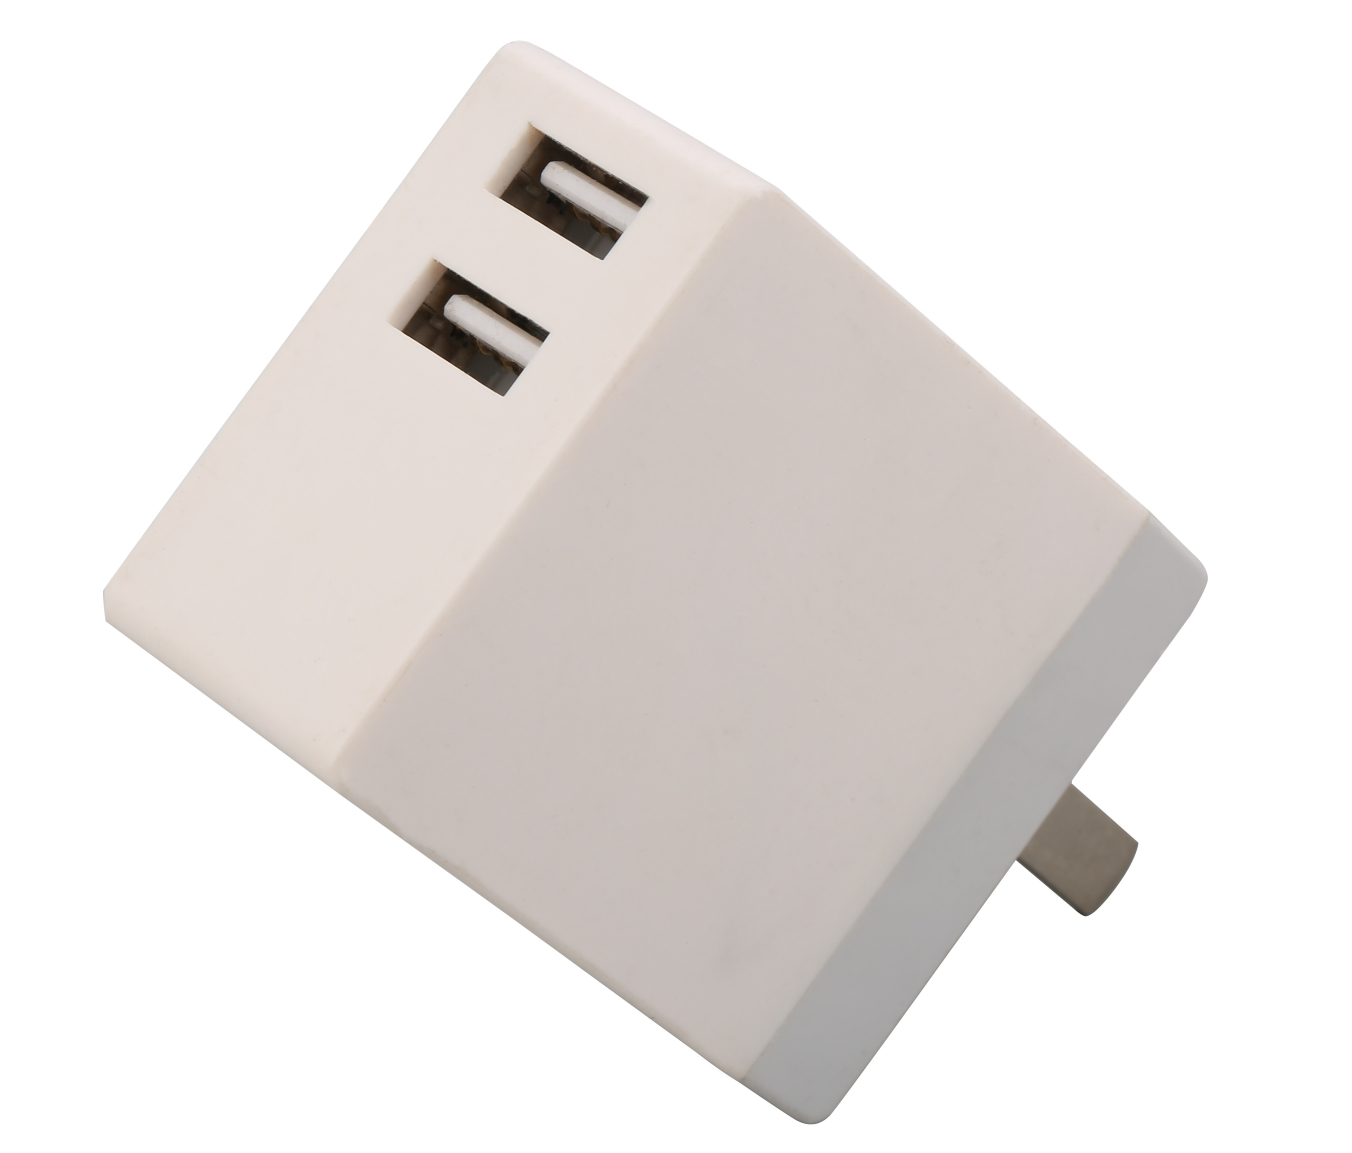 Magic quick charger and laptop interface authentication charger